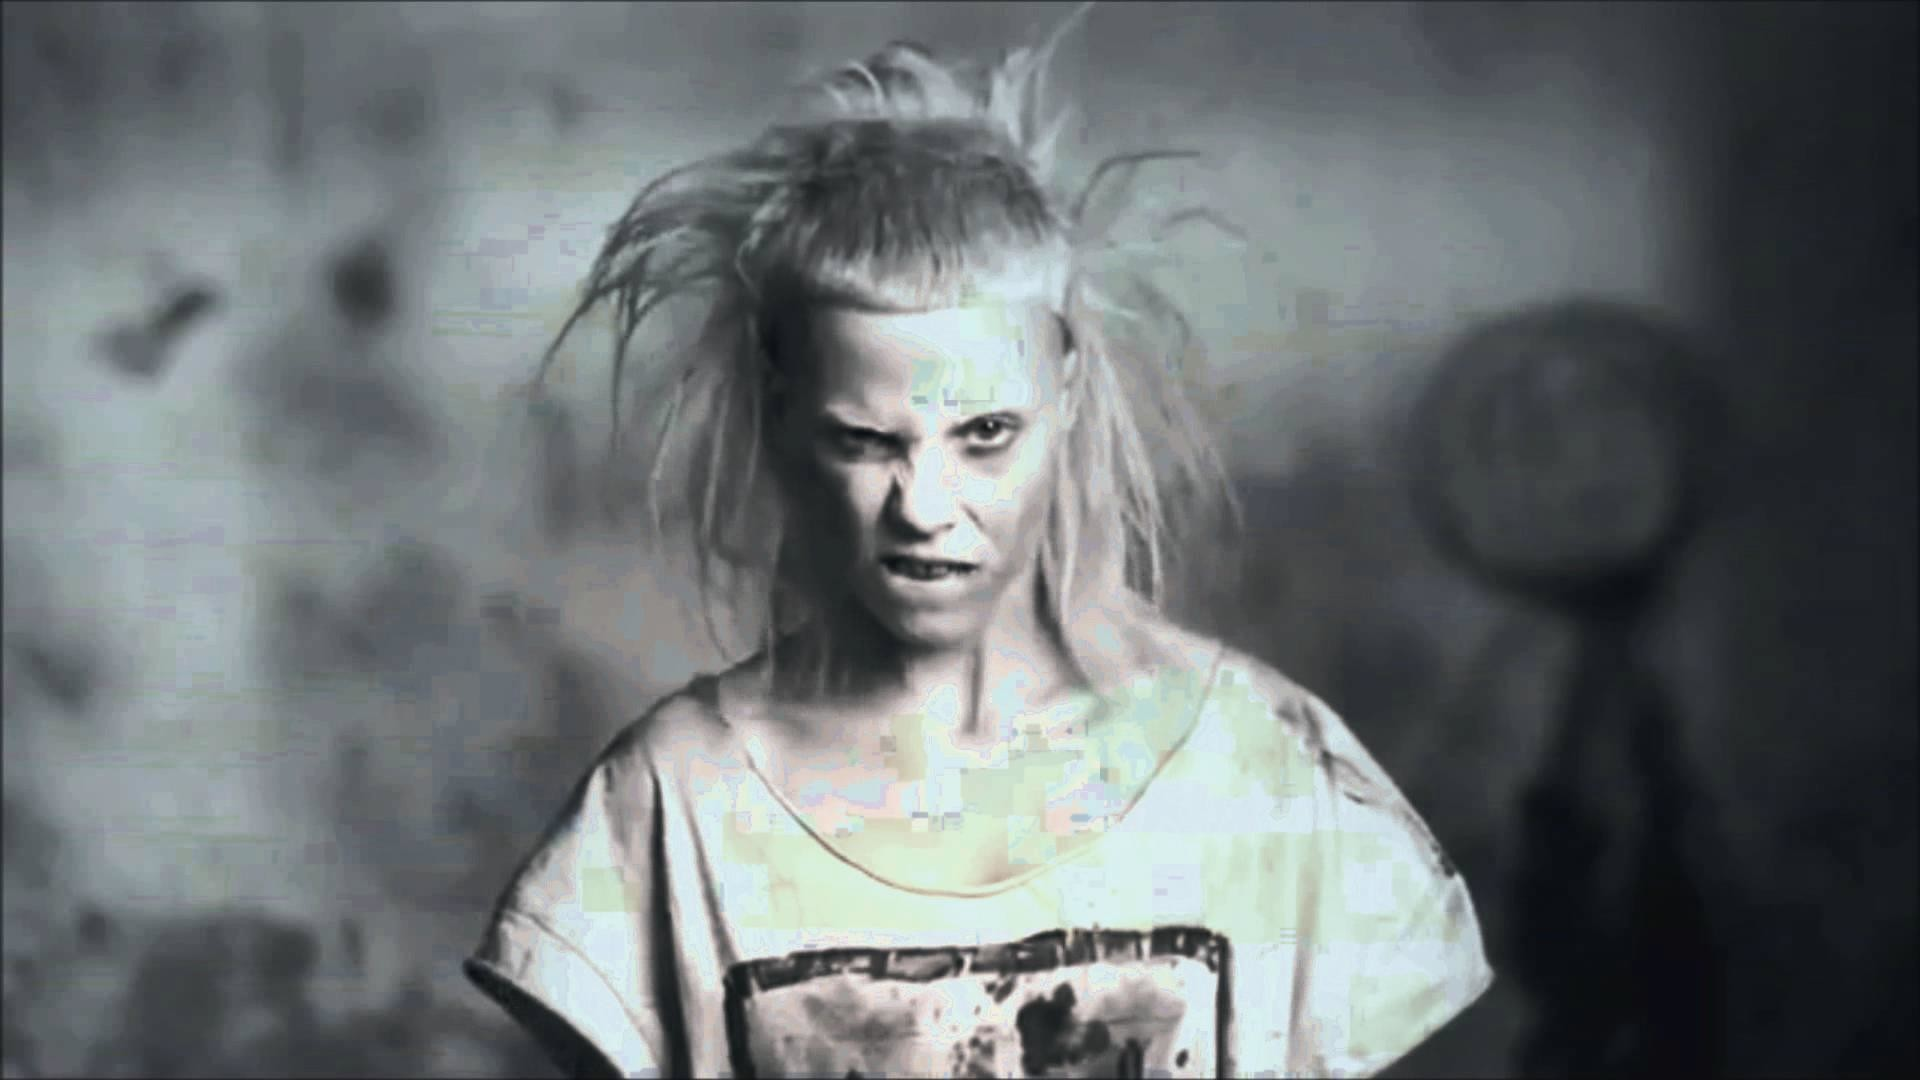 1920x1080 Yolandi visser Die antwoord HD Wallpapers, Desktop Backgrounds